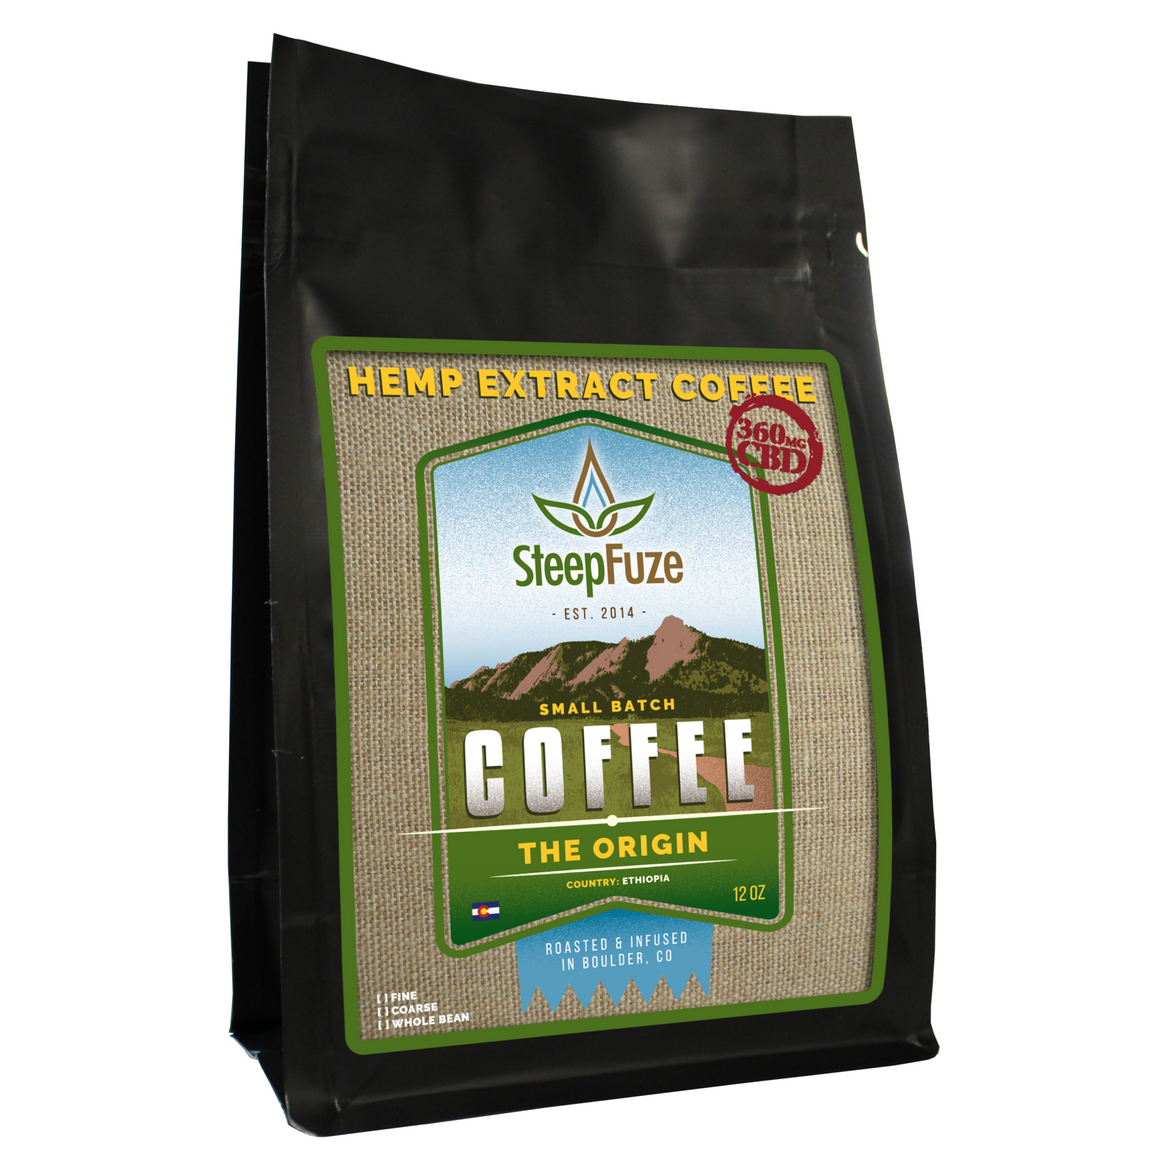 SteepFuze 12 oz. CBD Coffee - The Origin - 360 MG/Bag